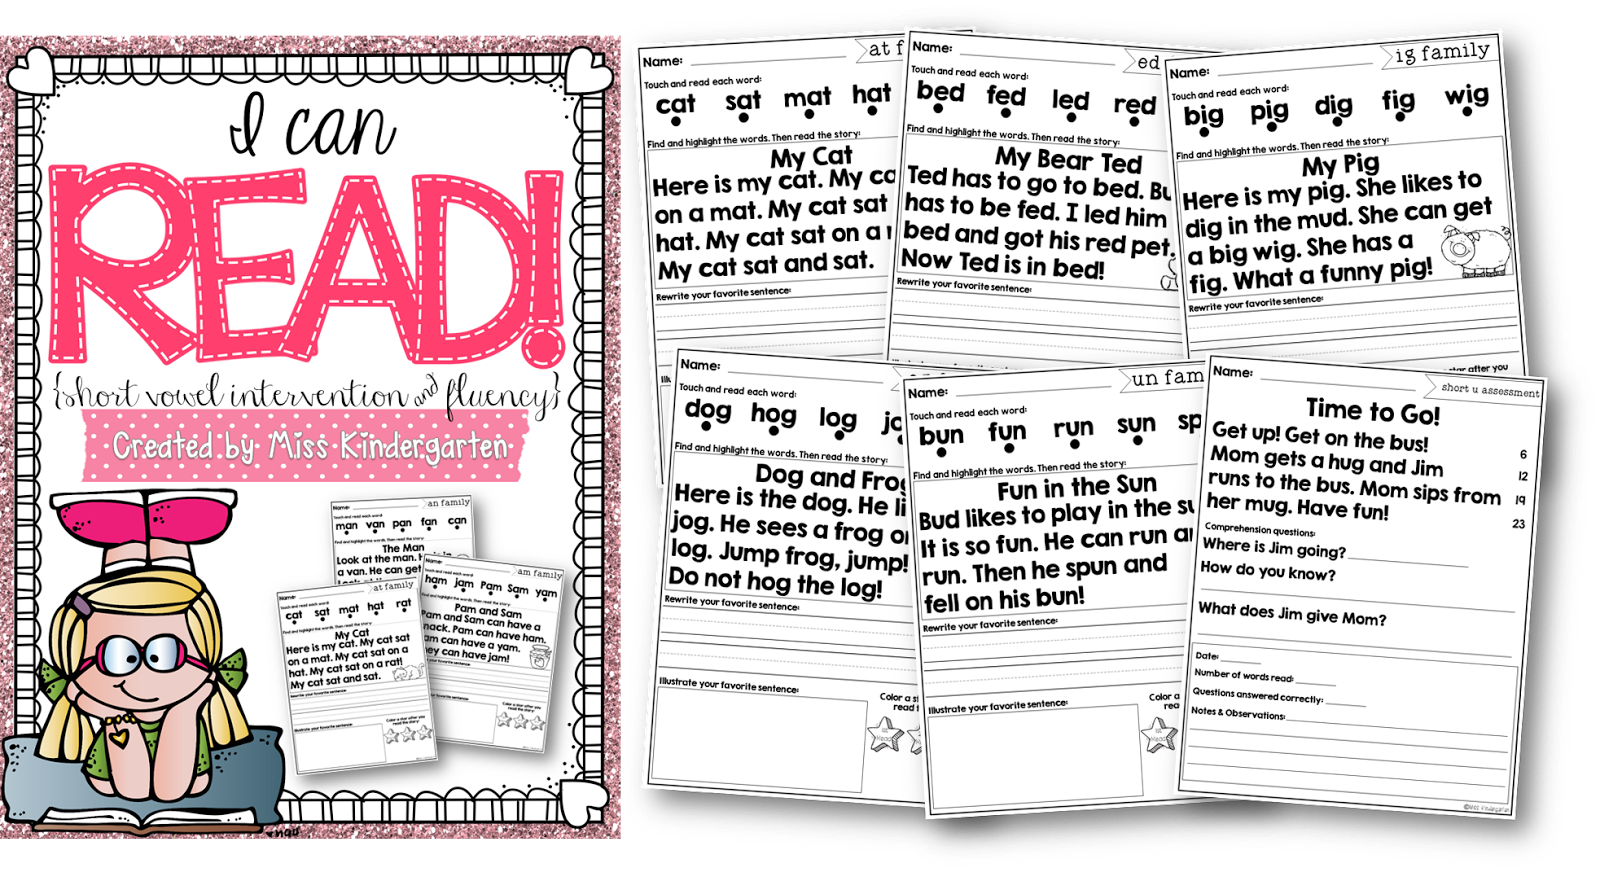 Worksheet Short Reading Passages i can read short vowel intervention miss kindergarten httpswww teacherspayteachers comproducti can